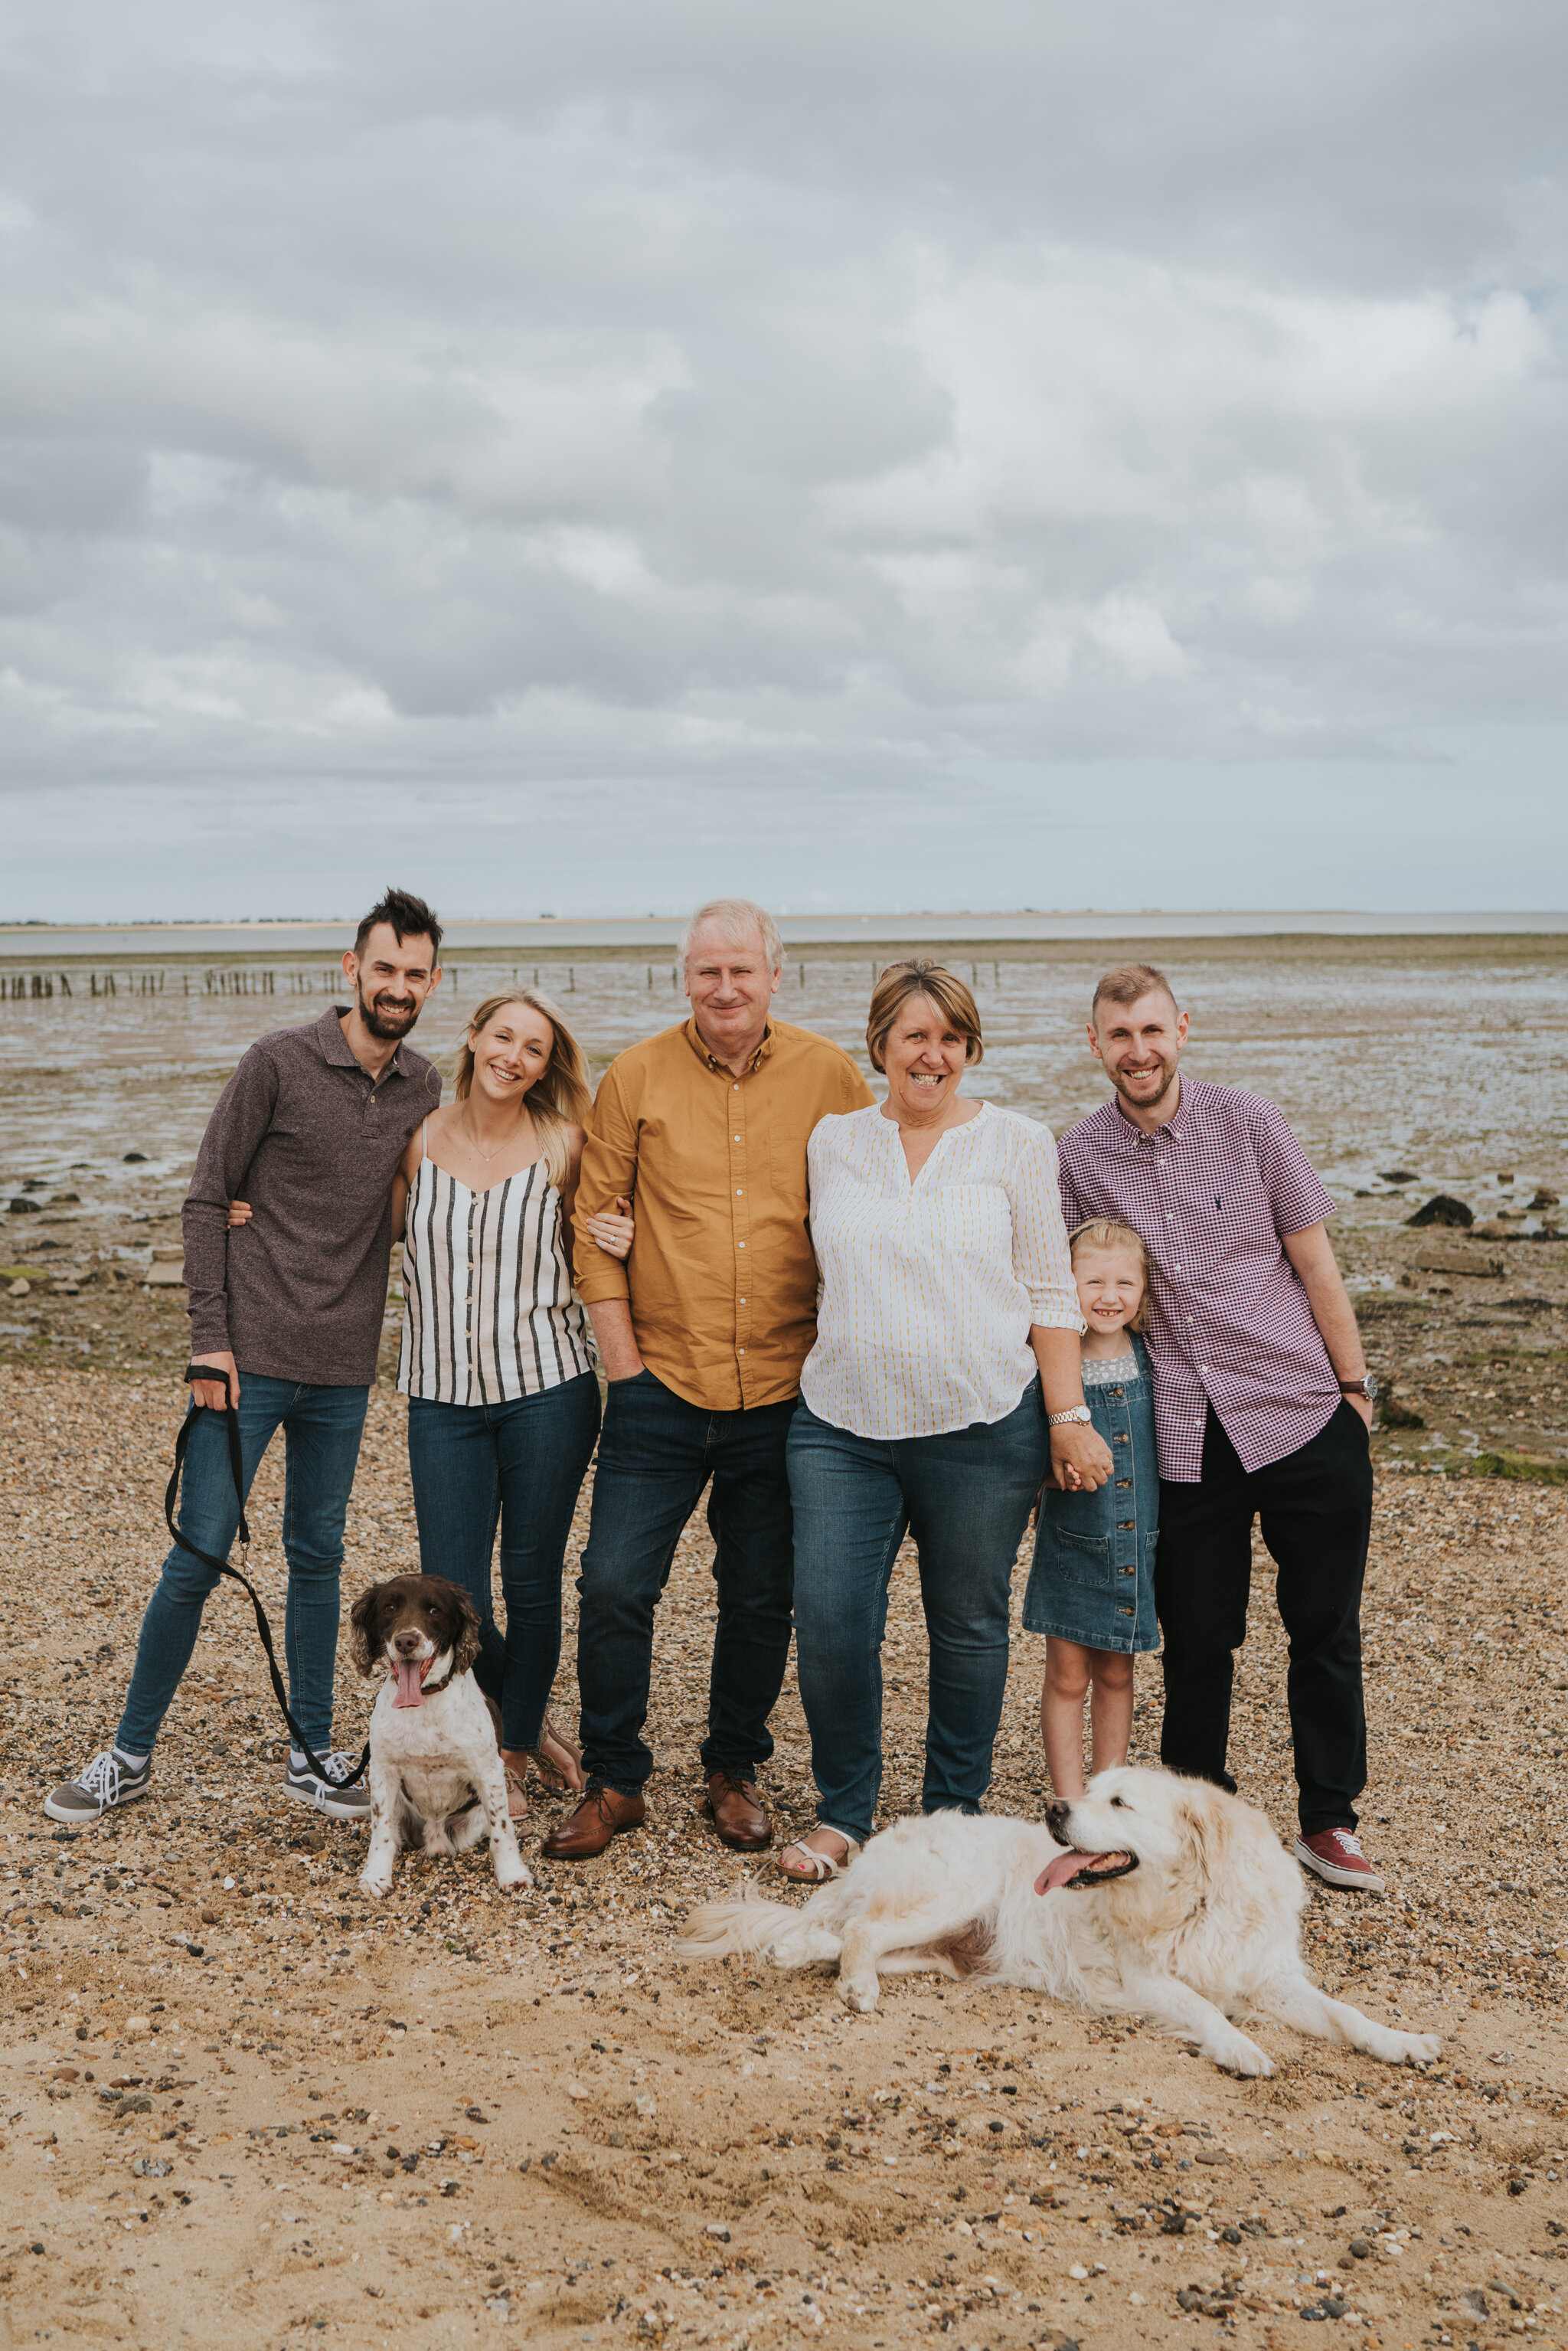 celebratory-beach-family-session-thomson-family-cudmore-grove-east-mersea-grace-elizabeth-colchester-essex-devon-suffolk-and-norfolk-alternative-wedding-and-family-photographer (3 of 53).jpg